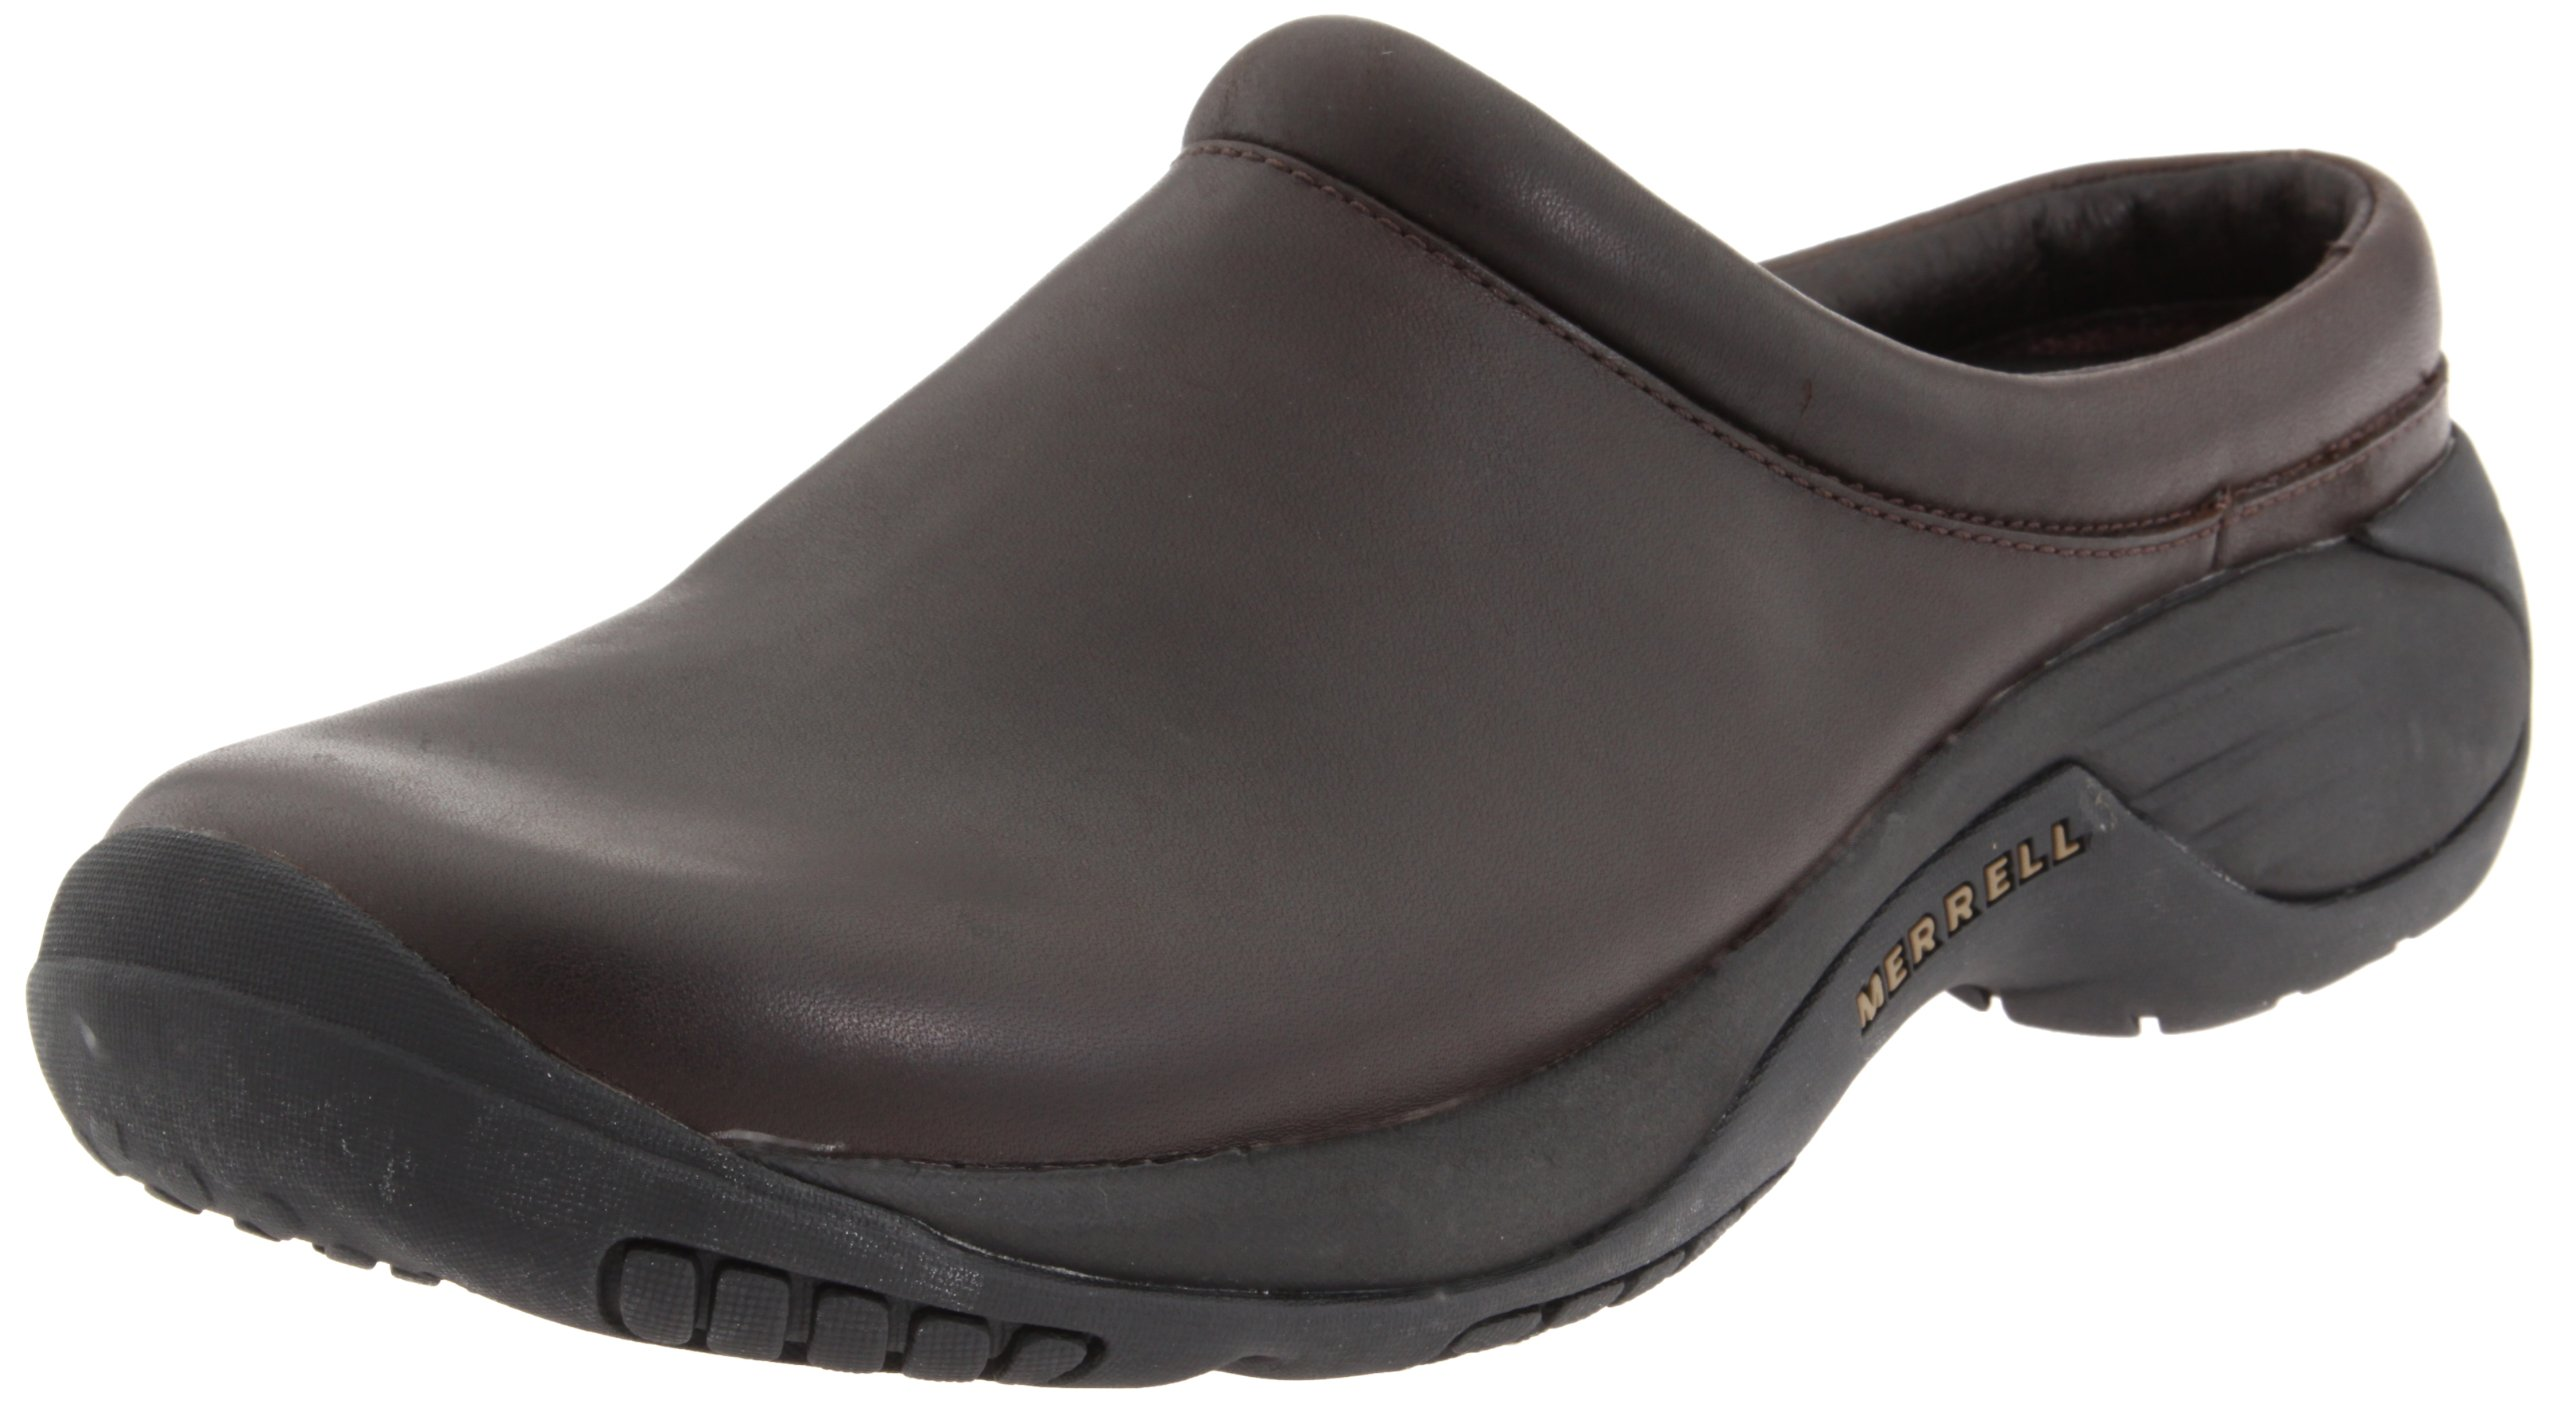 Merrell Men's Encore Gust Slip-On Shoe,Smooth Bug Brown Leather,10.5 M US